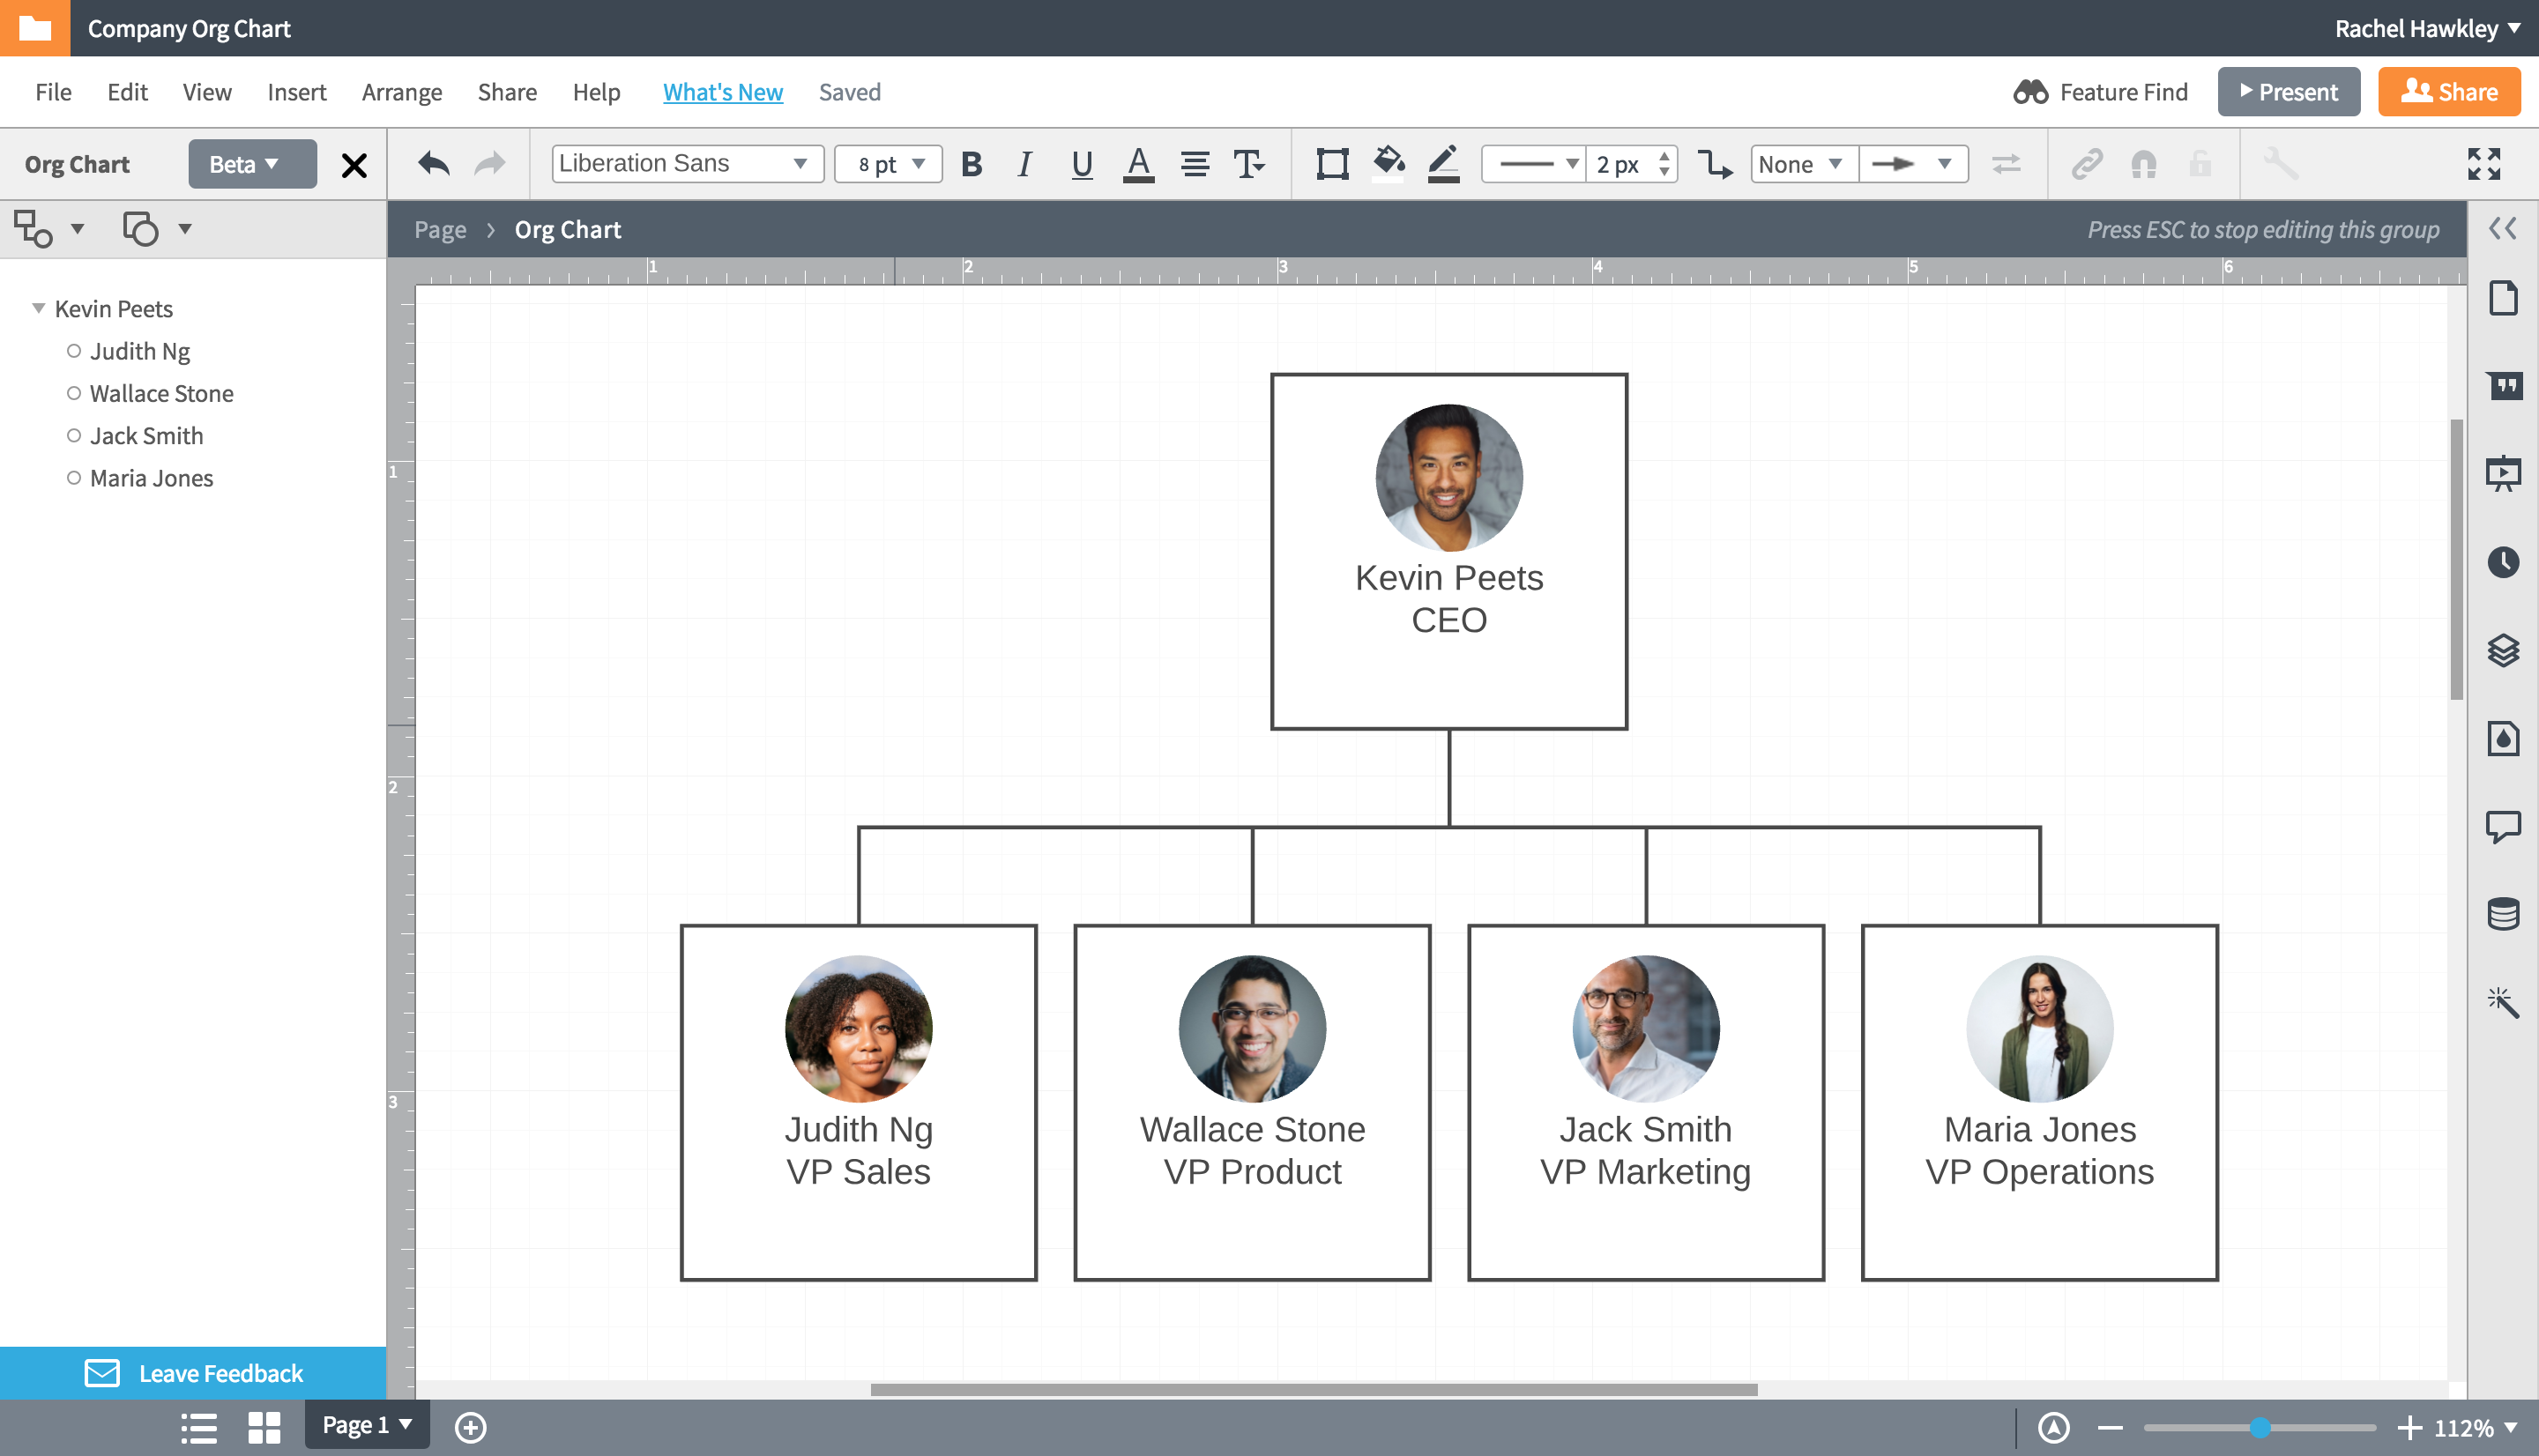 How to Make an Org Chart in PowerPoint - Imported Org Chart in Lucidchart